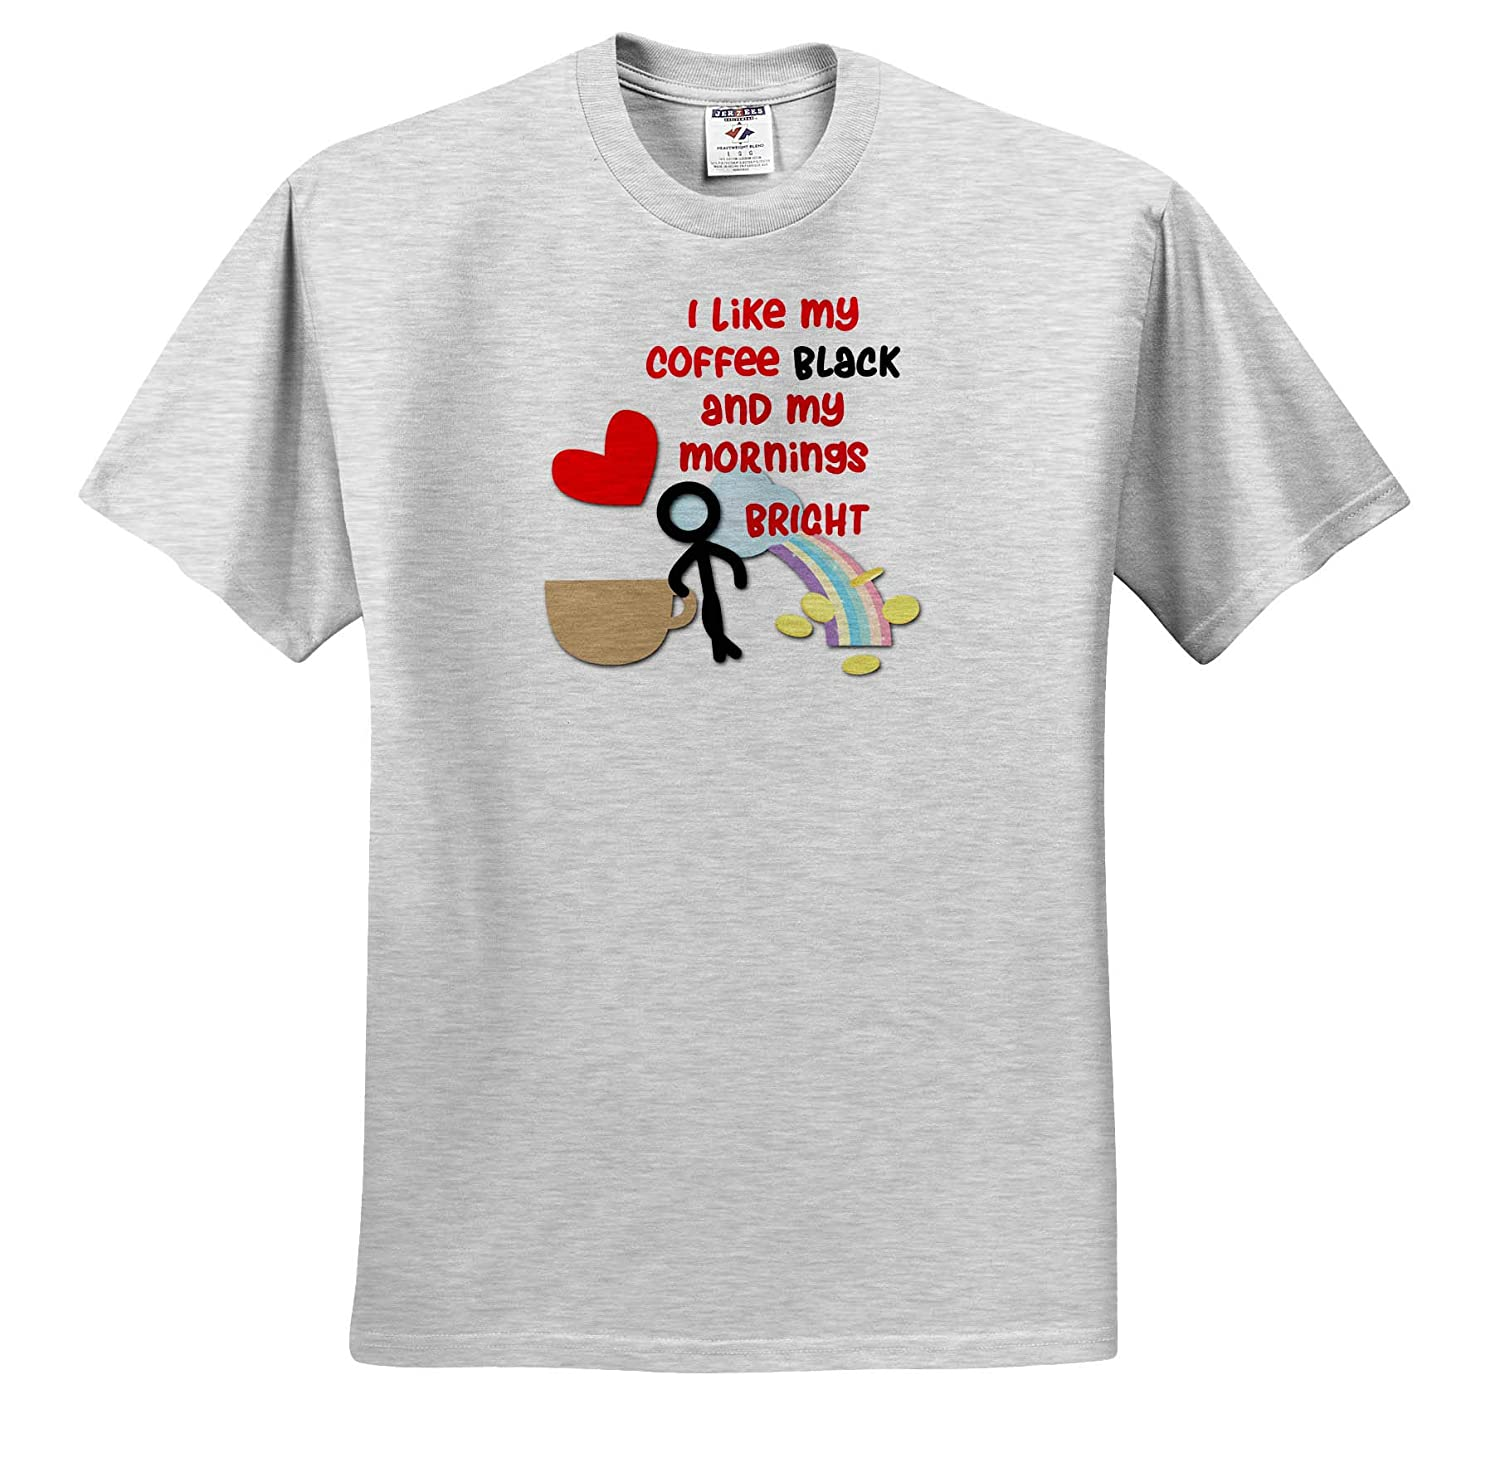 ts/_317044 Coffee time 3dRose SpiritualAwakenings Funny Humor so Have Fun with it Adult T-Shirt XL Brighten Your Day